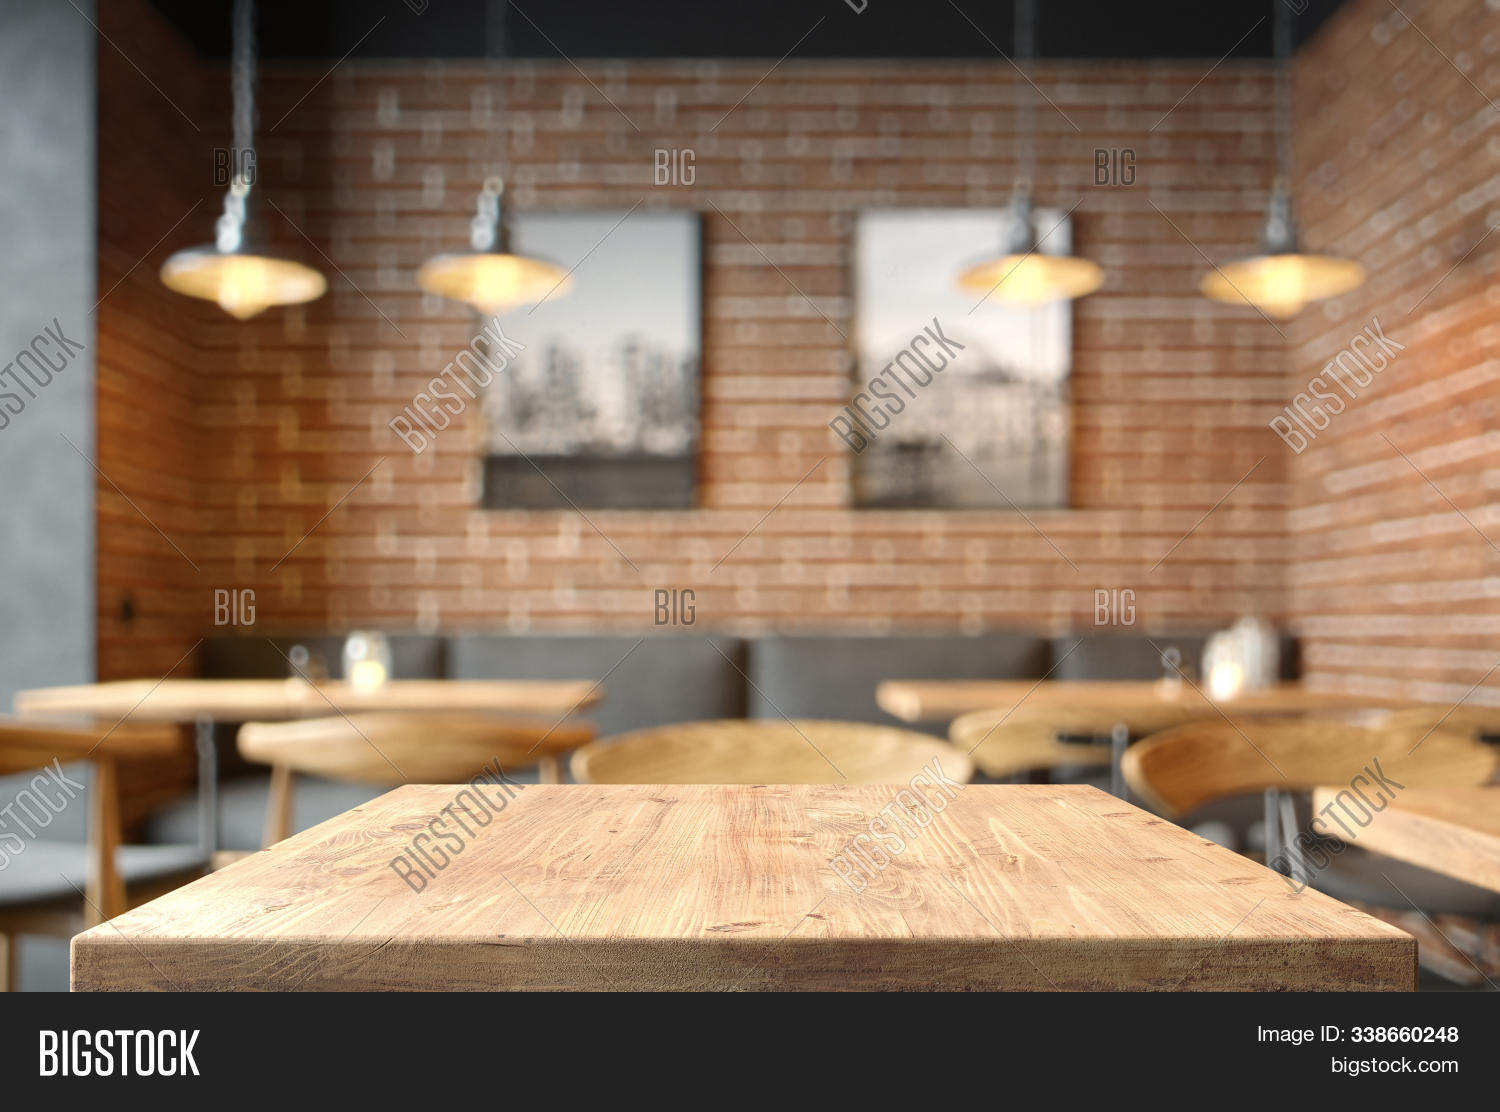 Picture of: Empty Coffee Table Image Photo Free Trial Bigstock